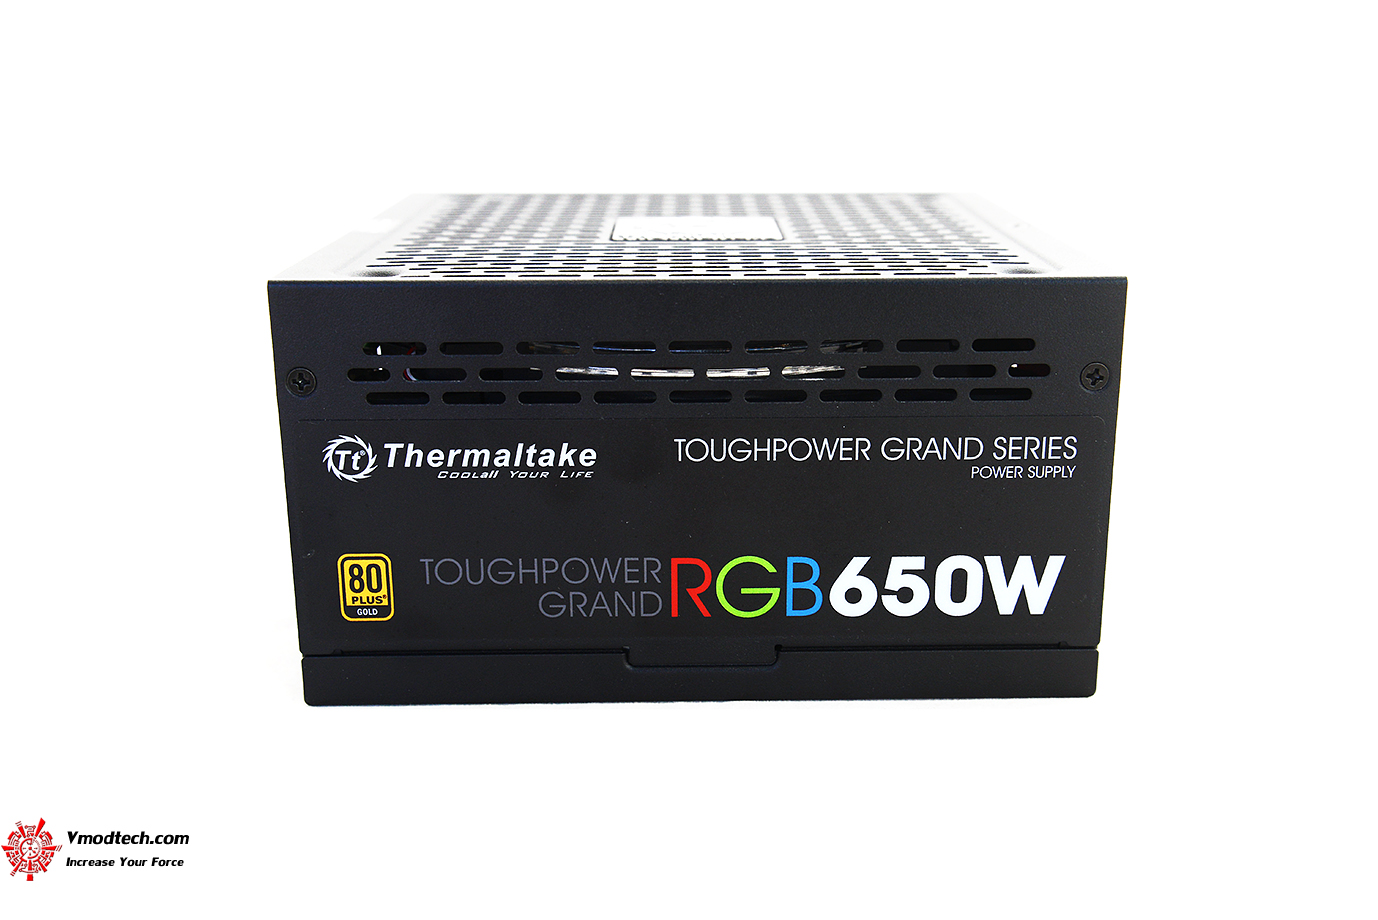 dsc 6193 Thermaltake Toughpower DPS G RGB 650W Gold Review